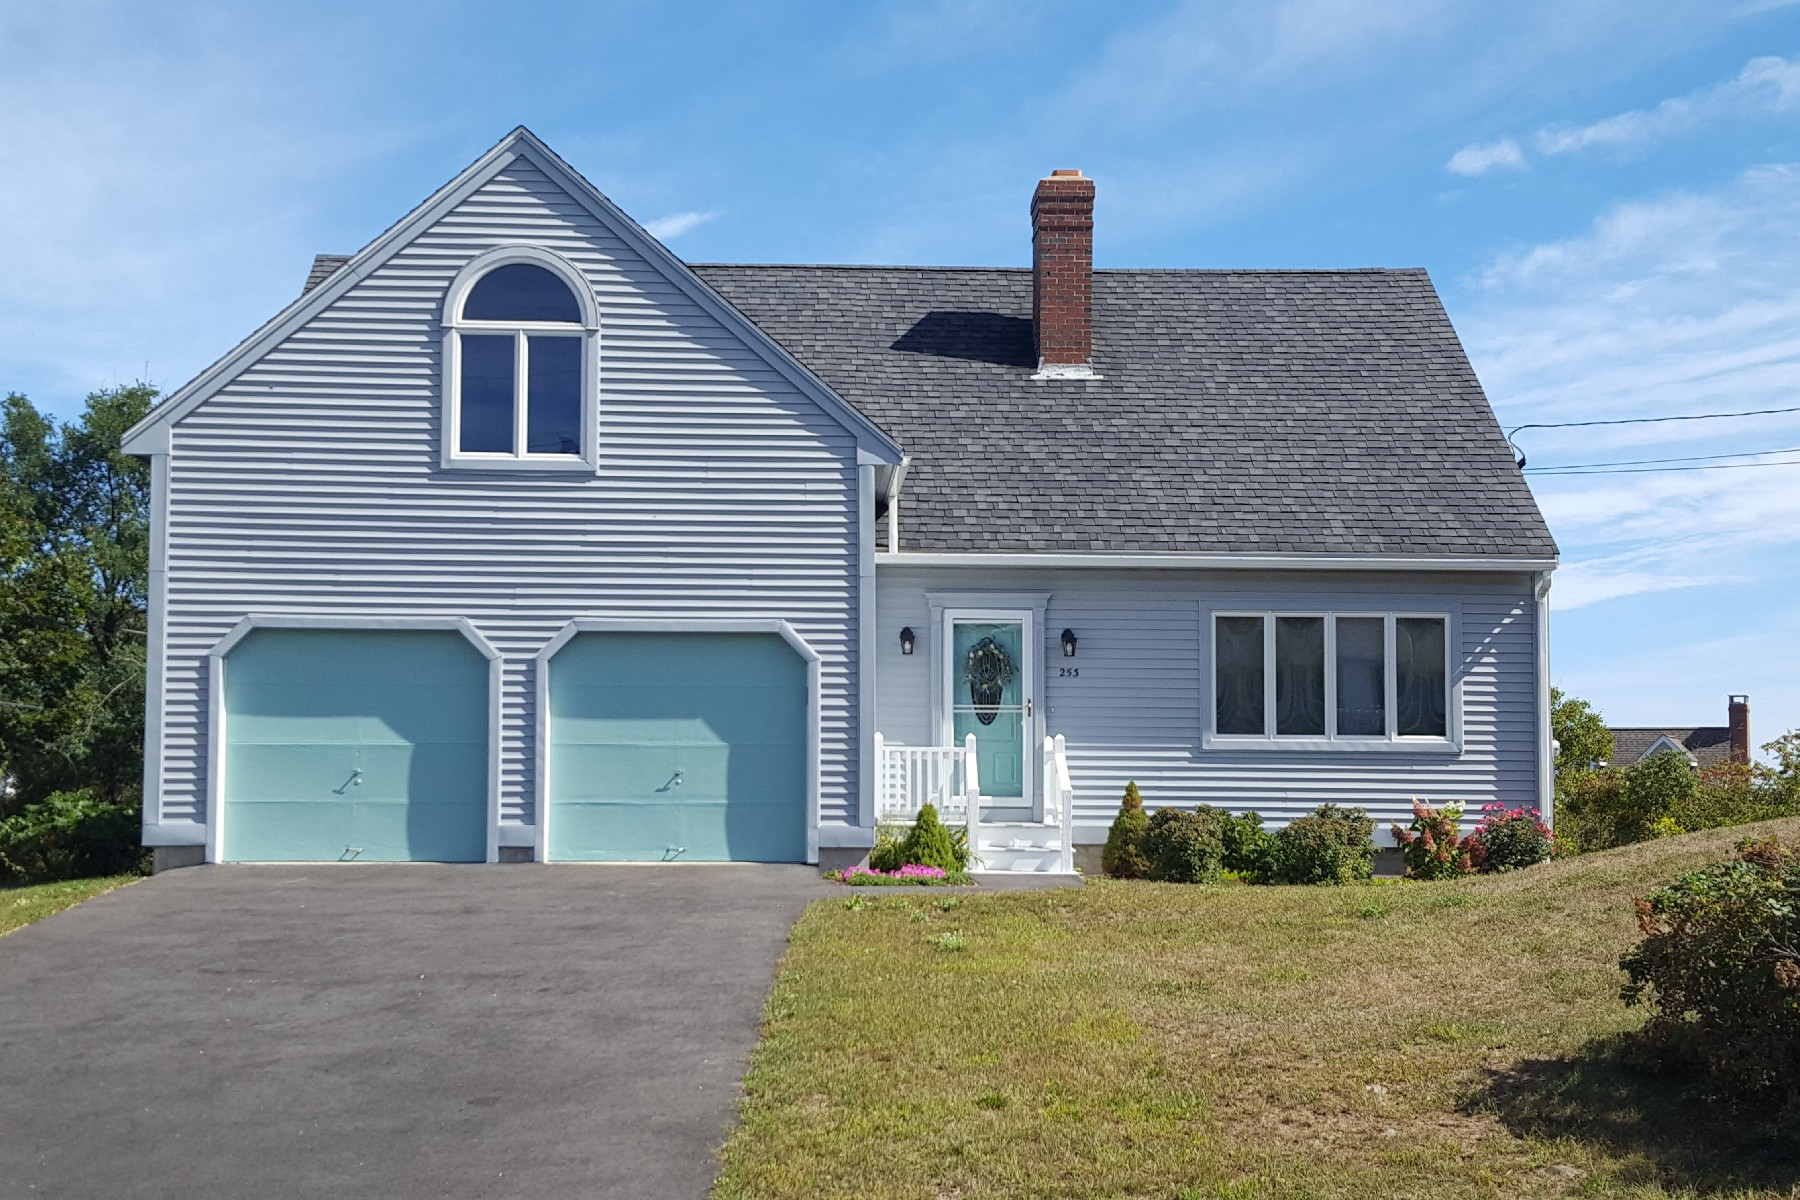 Single Family Home for Sale at Cape on The Nubble with Ocean Views 253 Nubble Road York, Maine, 03909 United States